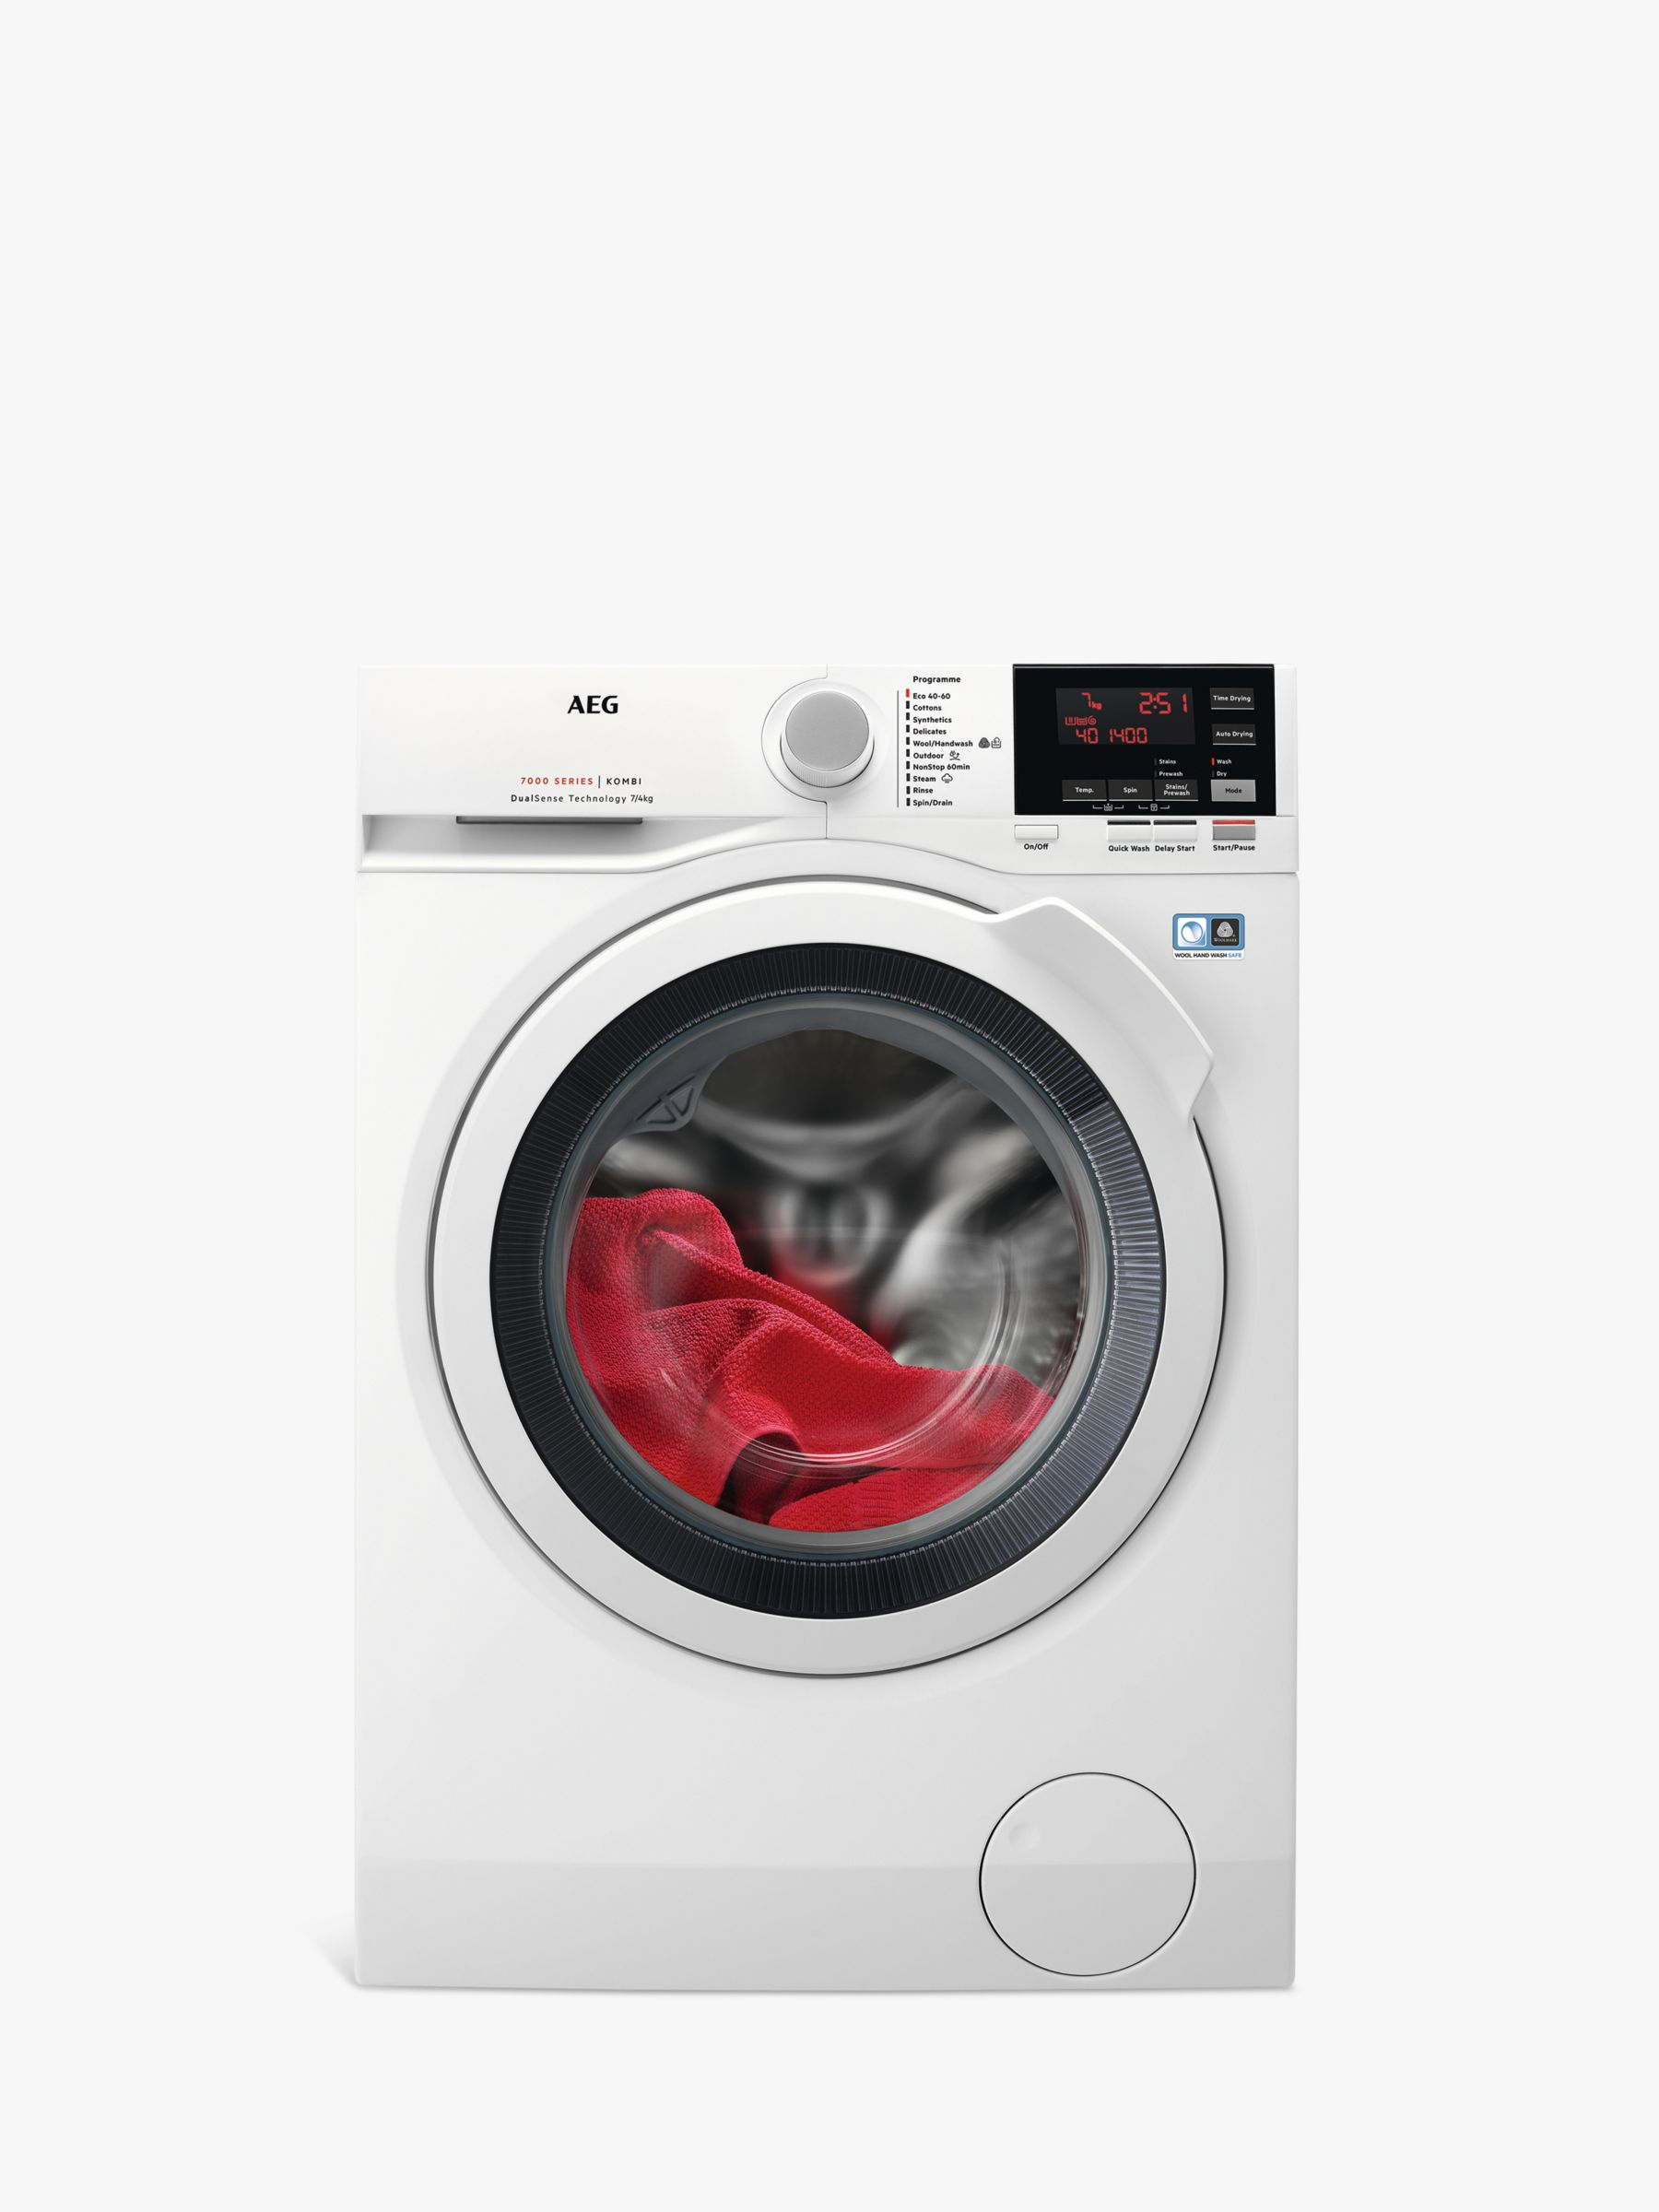 AEG AEG L7WBG741R Freestanding Washer Dryer, 7kg Wash/4kg Dry Load, A Energy Rating, 1400rpm Spin, White